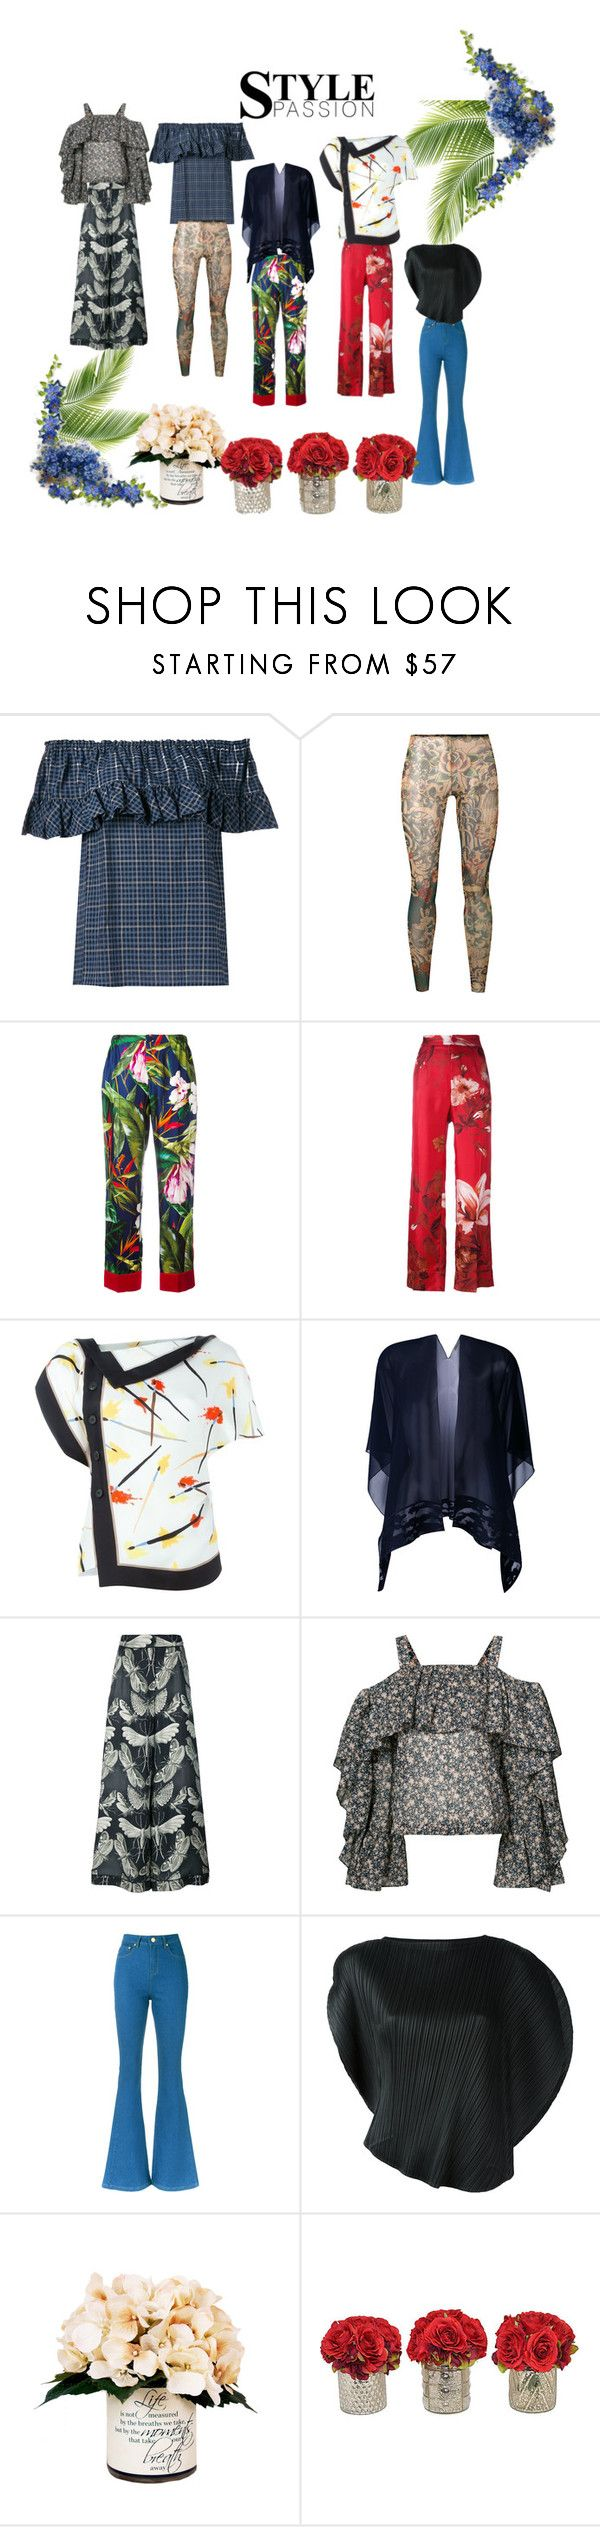 """""""fashion sale@@"""" by ramakumari ❤ liked on Polyvore featuring Hache, Dsquared2, F.R.S For Restless Sleepers, Emilio Pucci, D.Exterior, Robert Rodriguez, Lilly Sarti, Pleats Please by Issey Miyake, Creative Displays and The French Bee"""